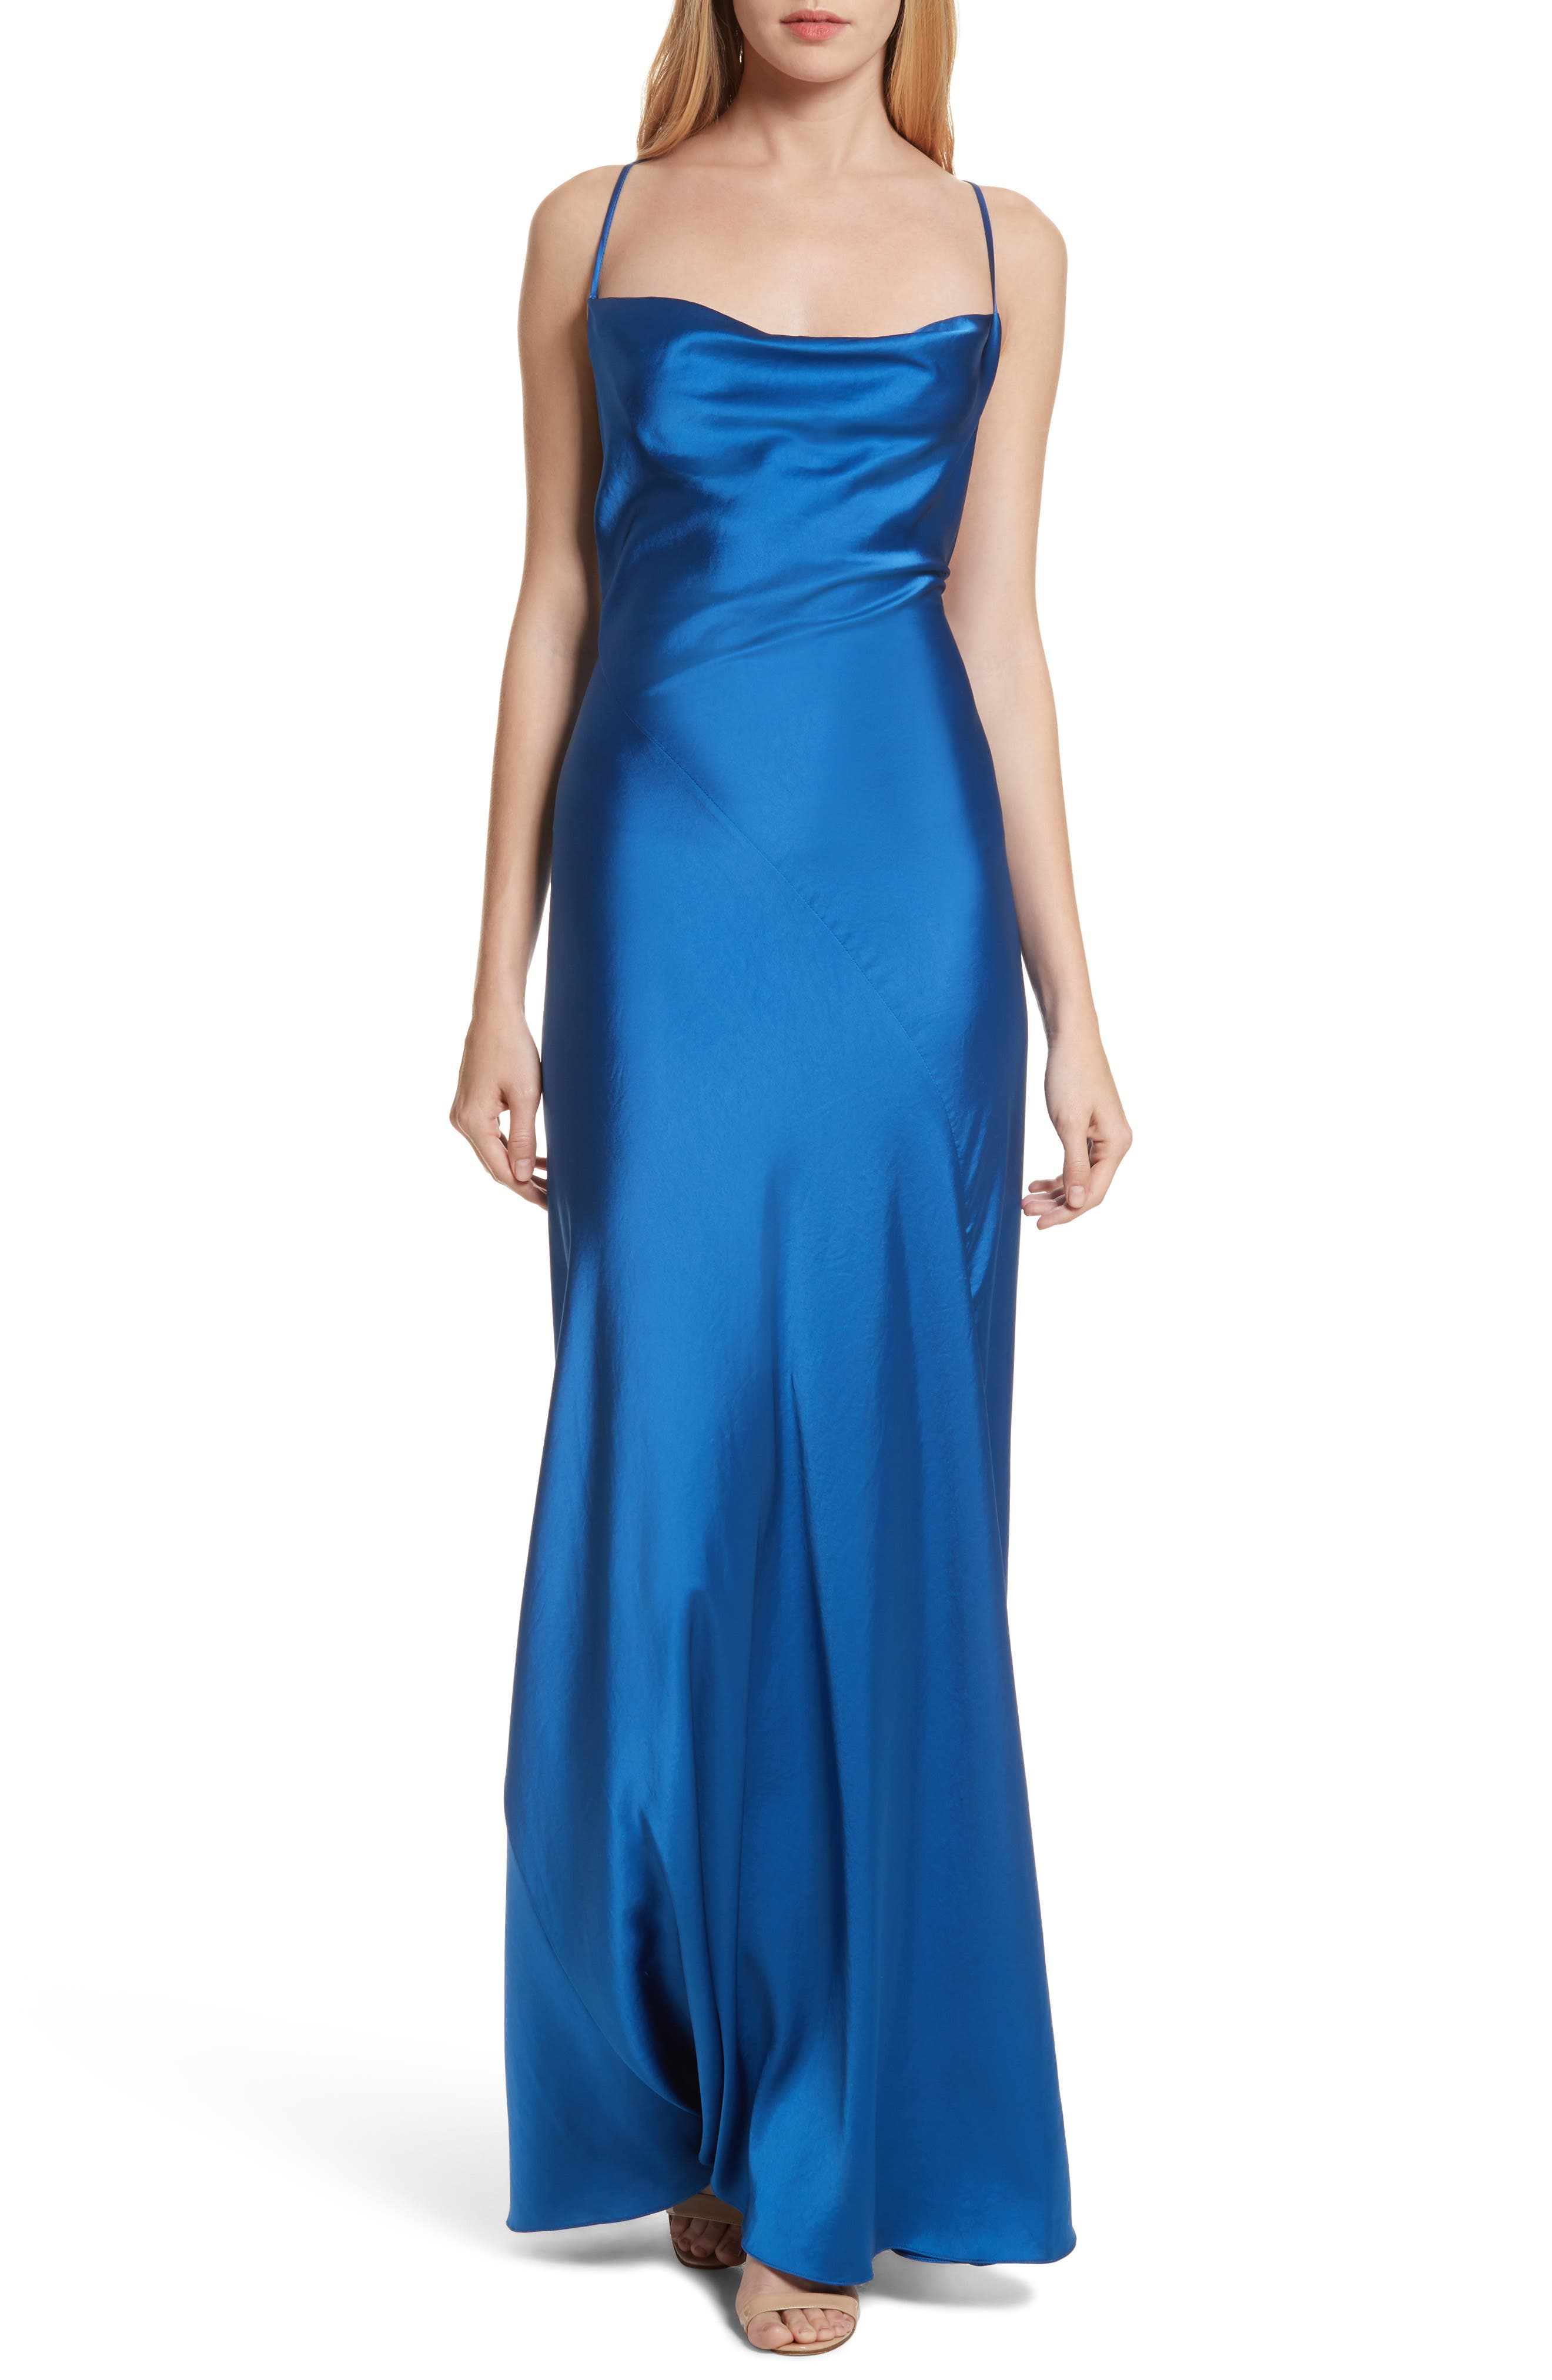 Diane von Furstenberg Open Back A-Line Gown,                         Main,                         color,